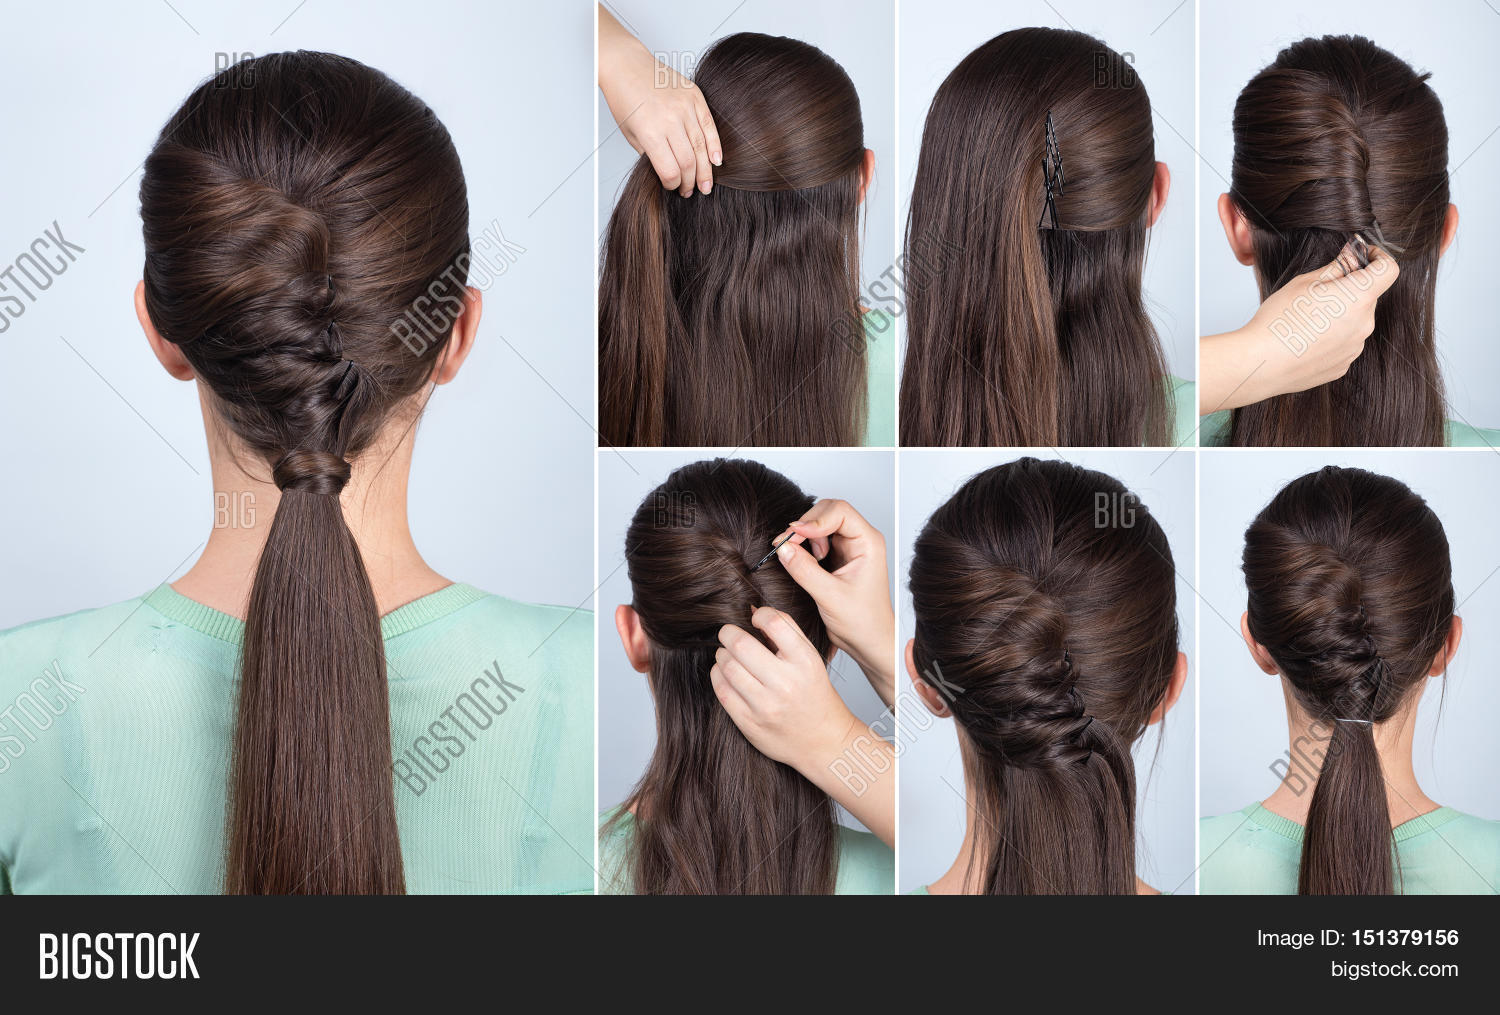 Simple Hairstyle Image Photo Free Trial Bigstock